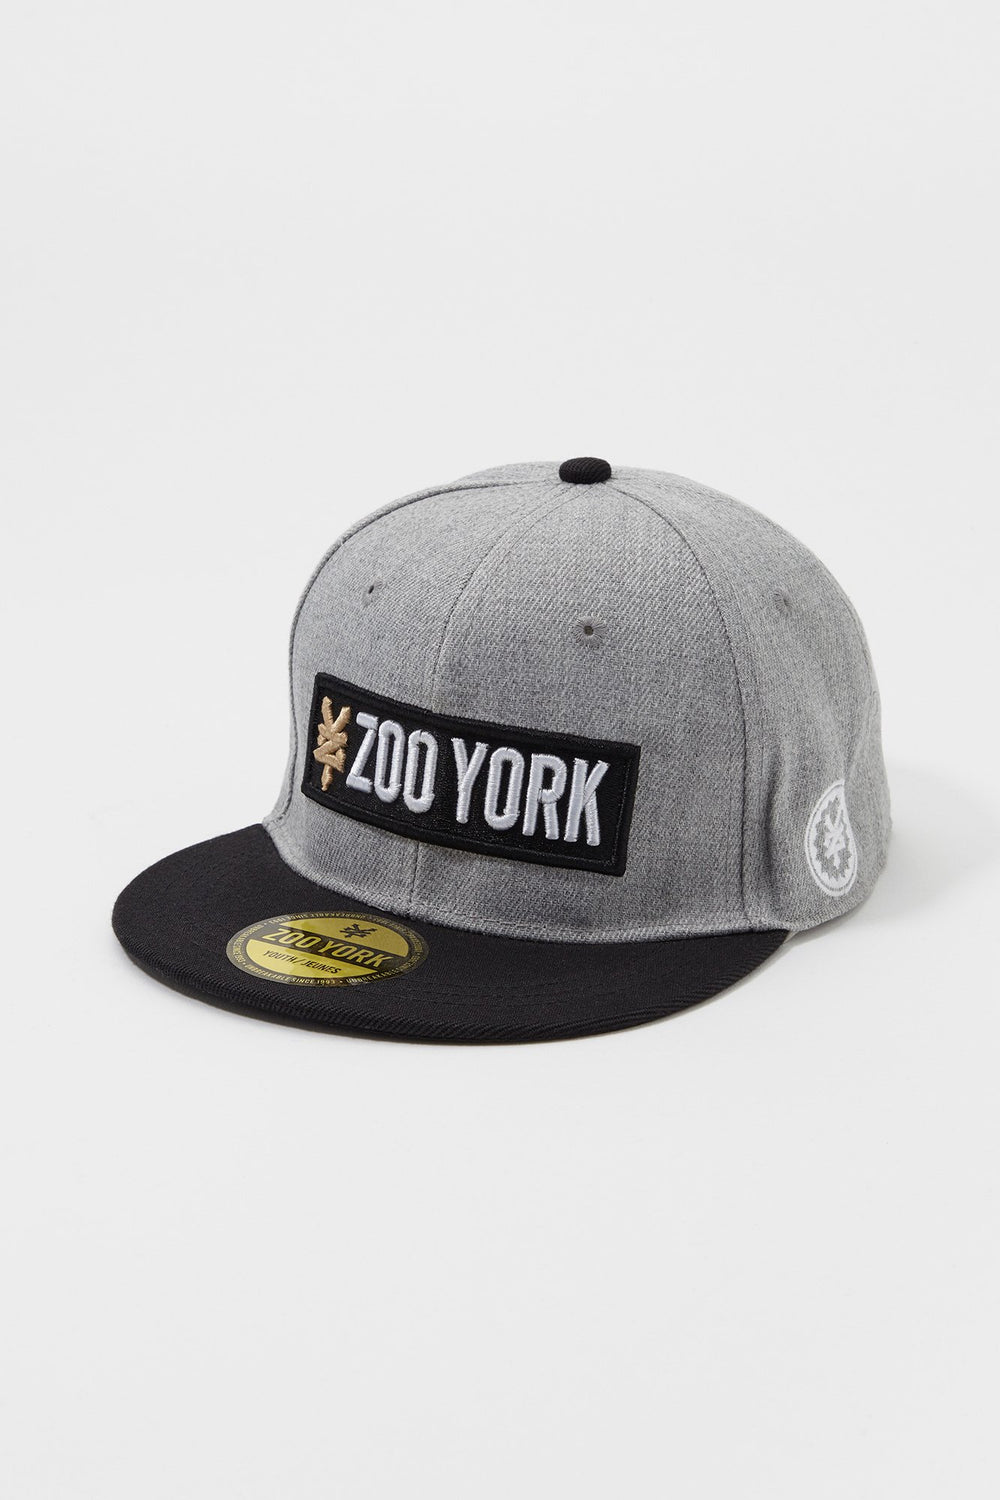 Zoo York Mens Box Logo Snapback Hat Heather Grey